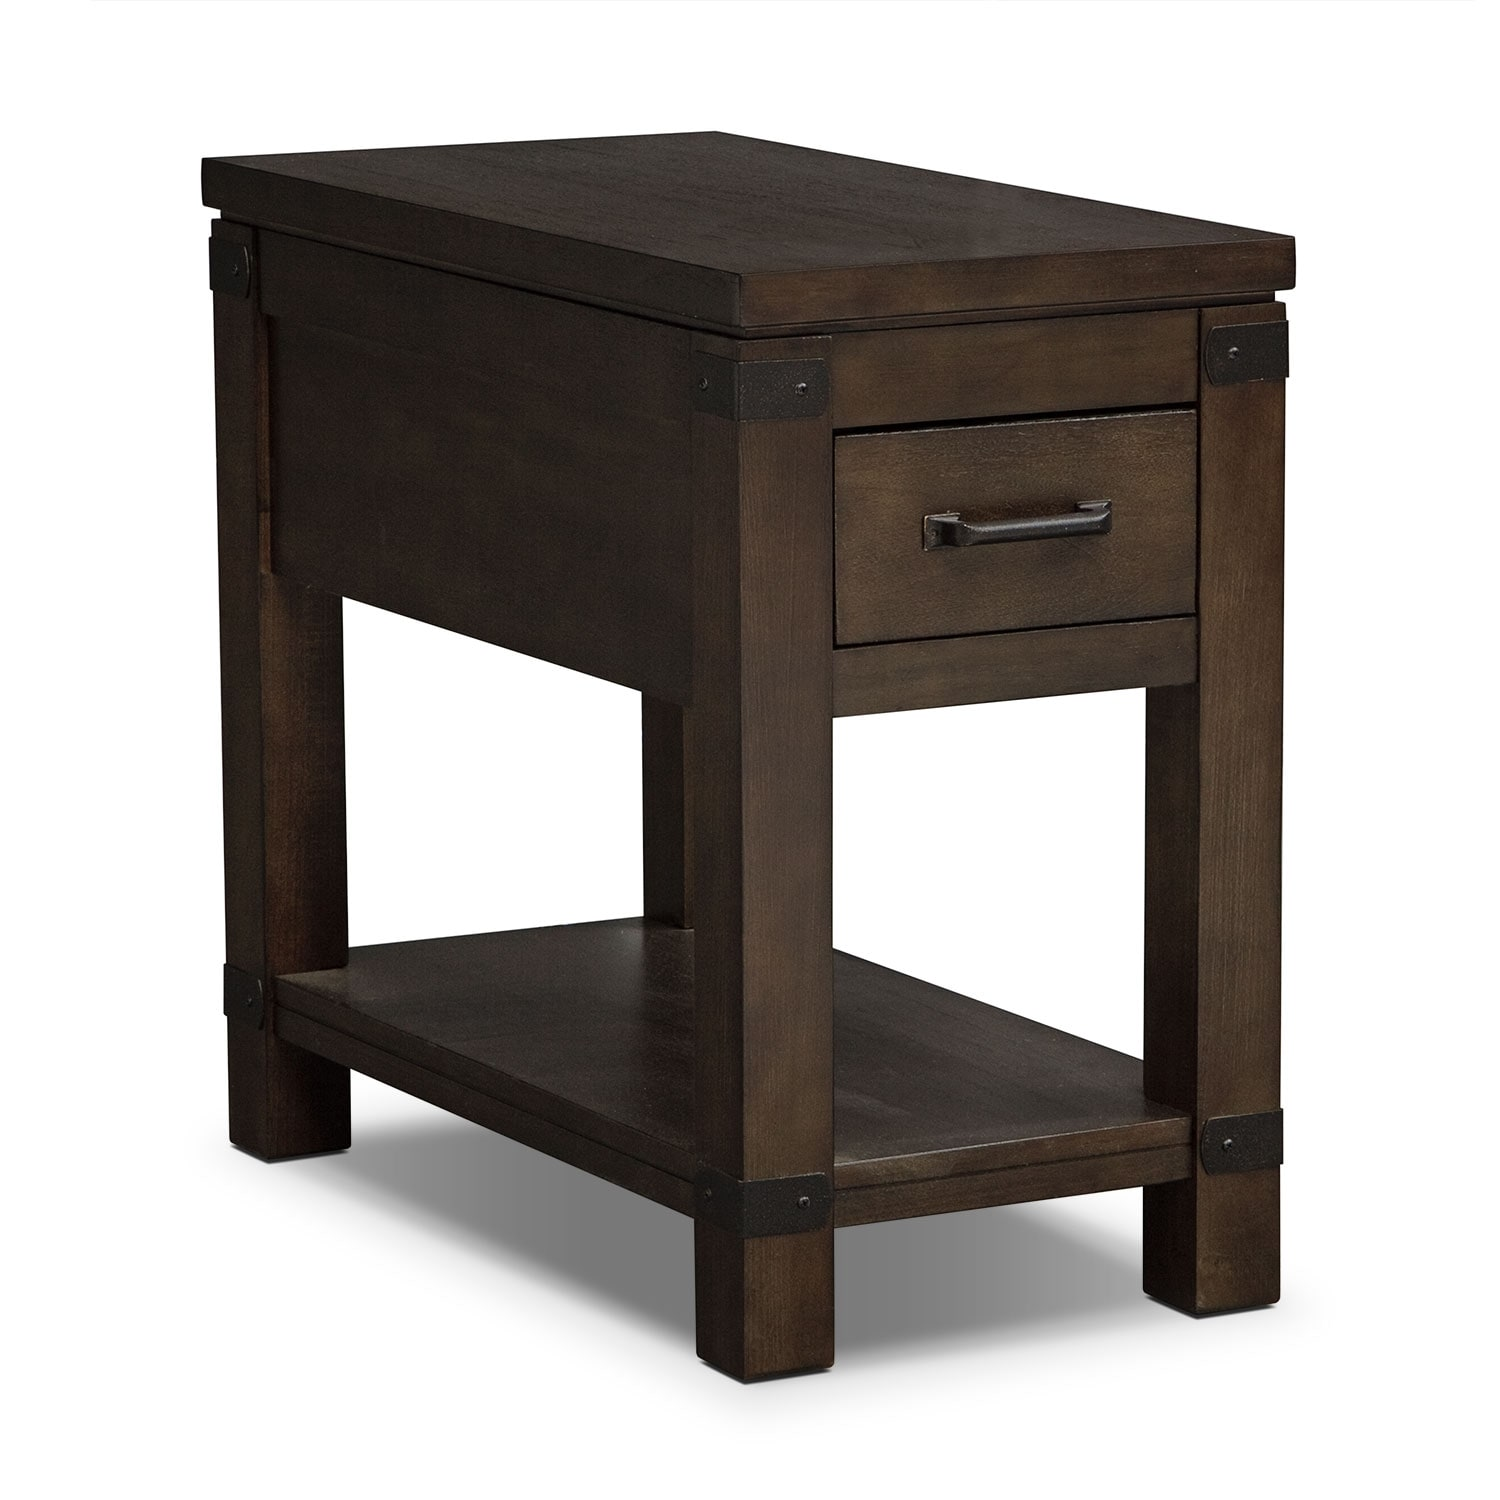 Camryn chairside table warm cocoa value city furniture for Table furniture